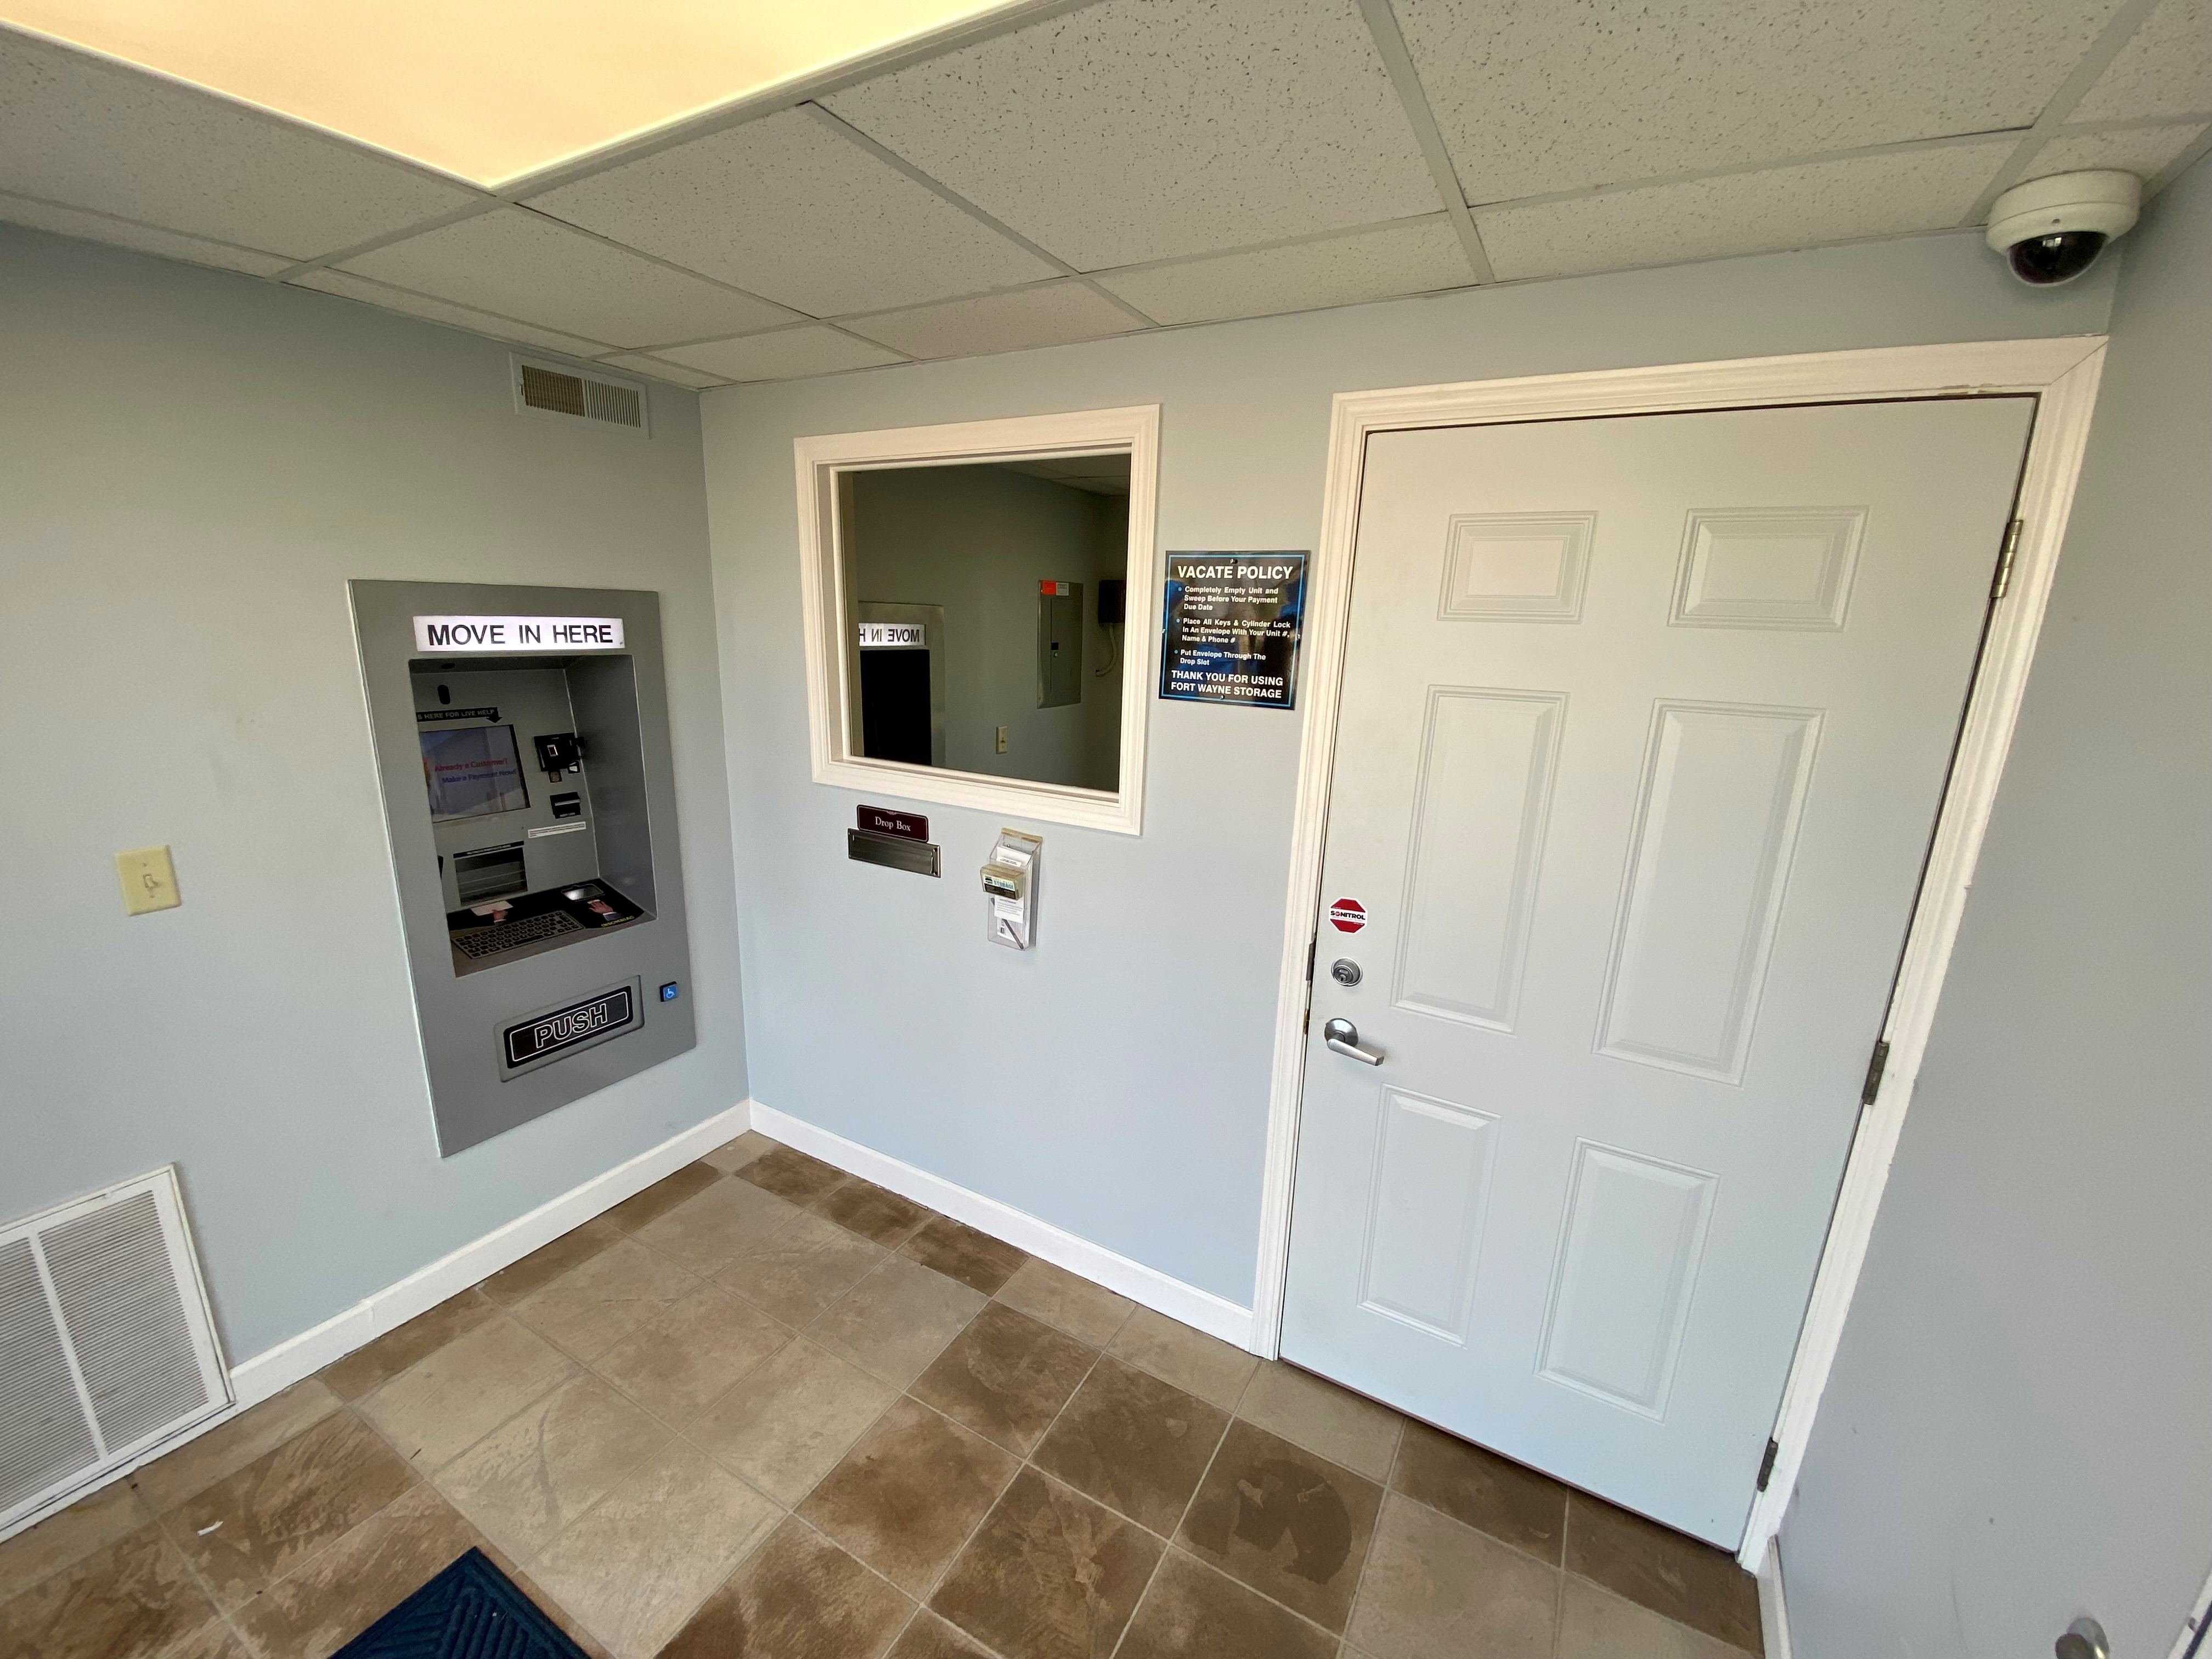 24-hour access kiosk for move ins